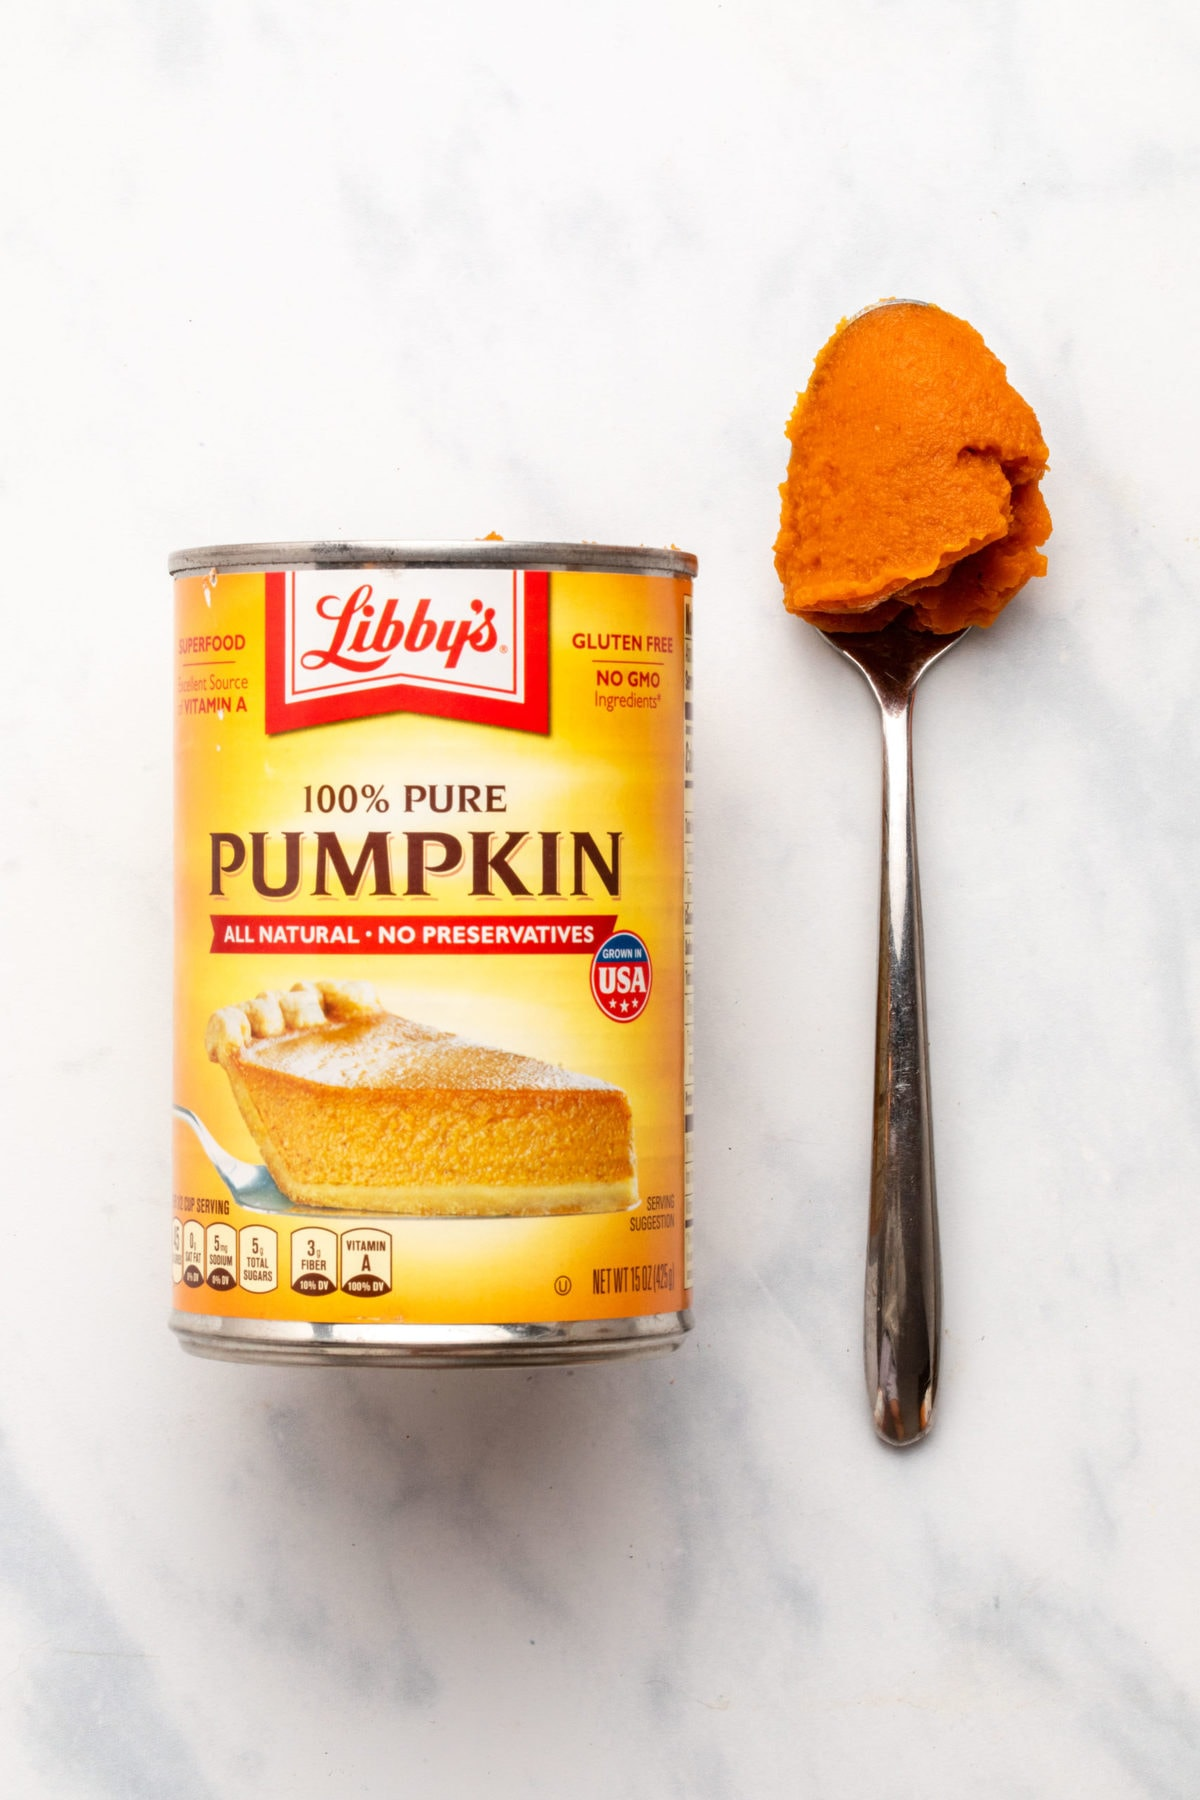 Can of Libby's pumpkin puree next to spoon with puree on it